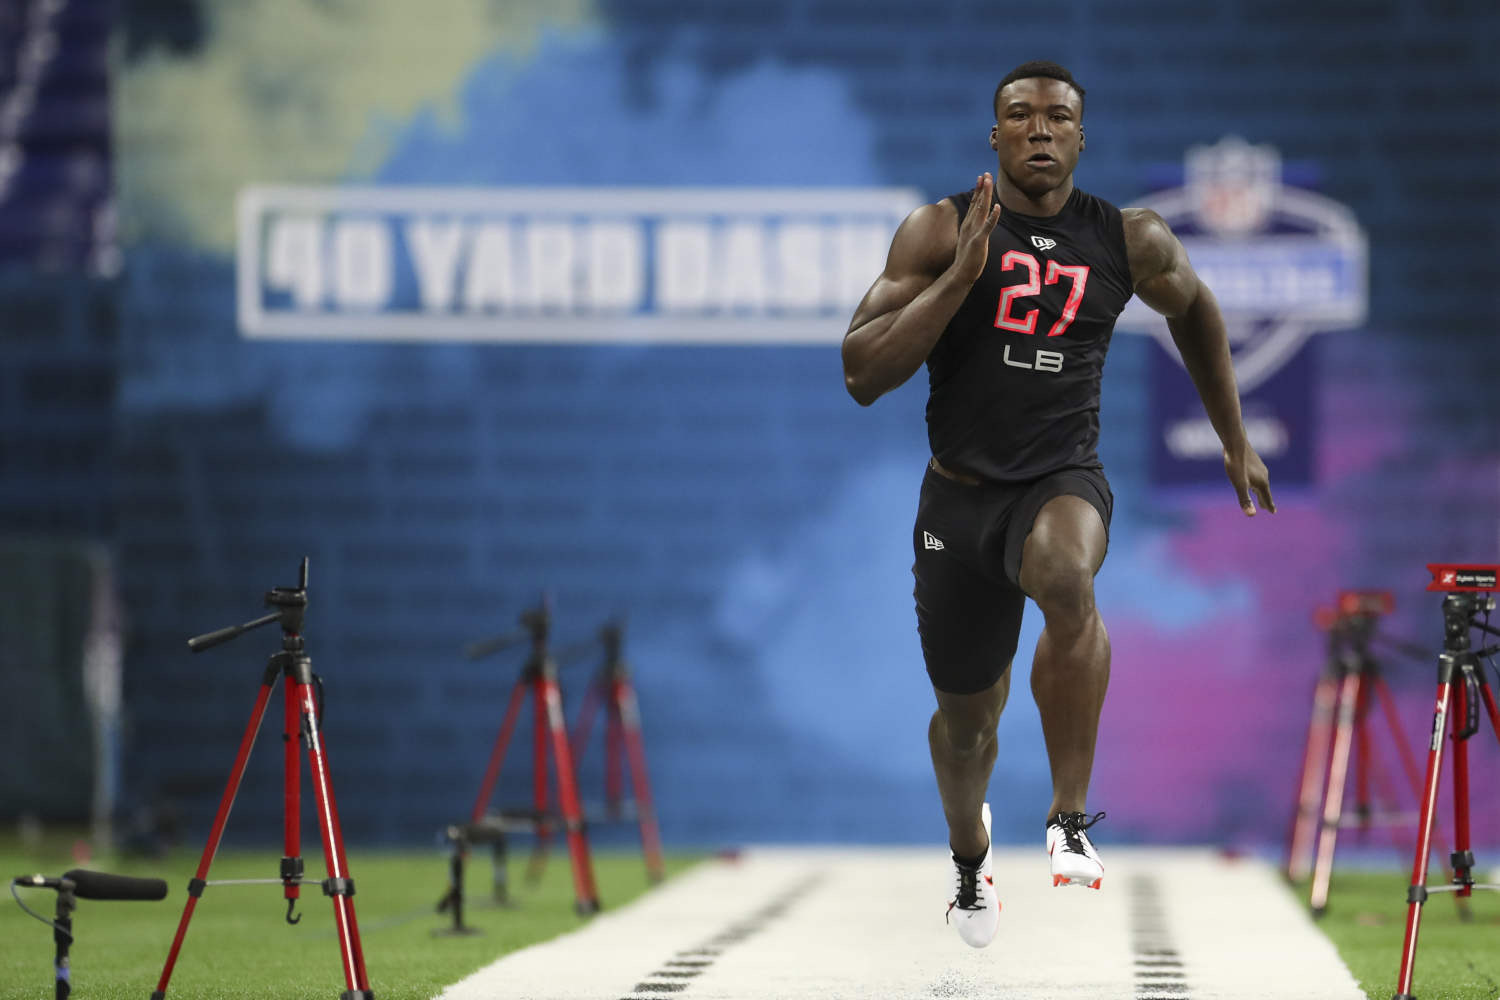 Packer's Post Combine Wrap-Up!